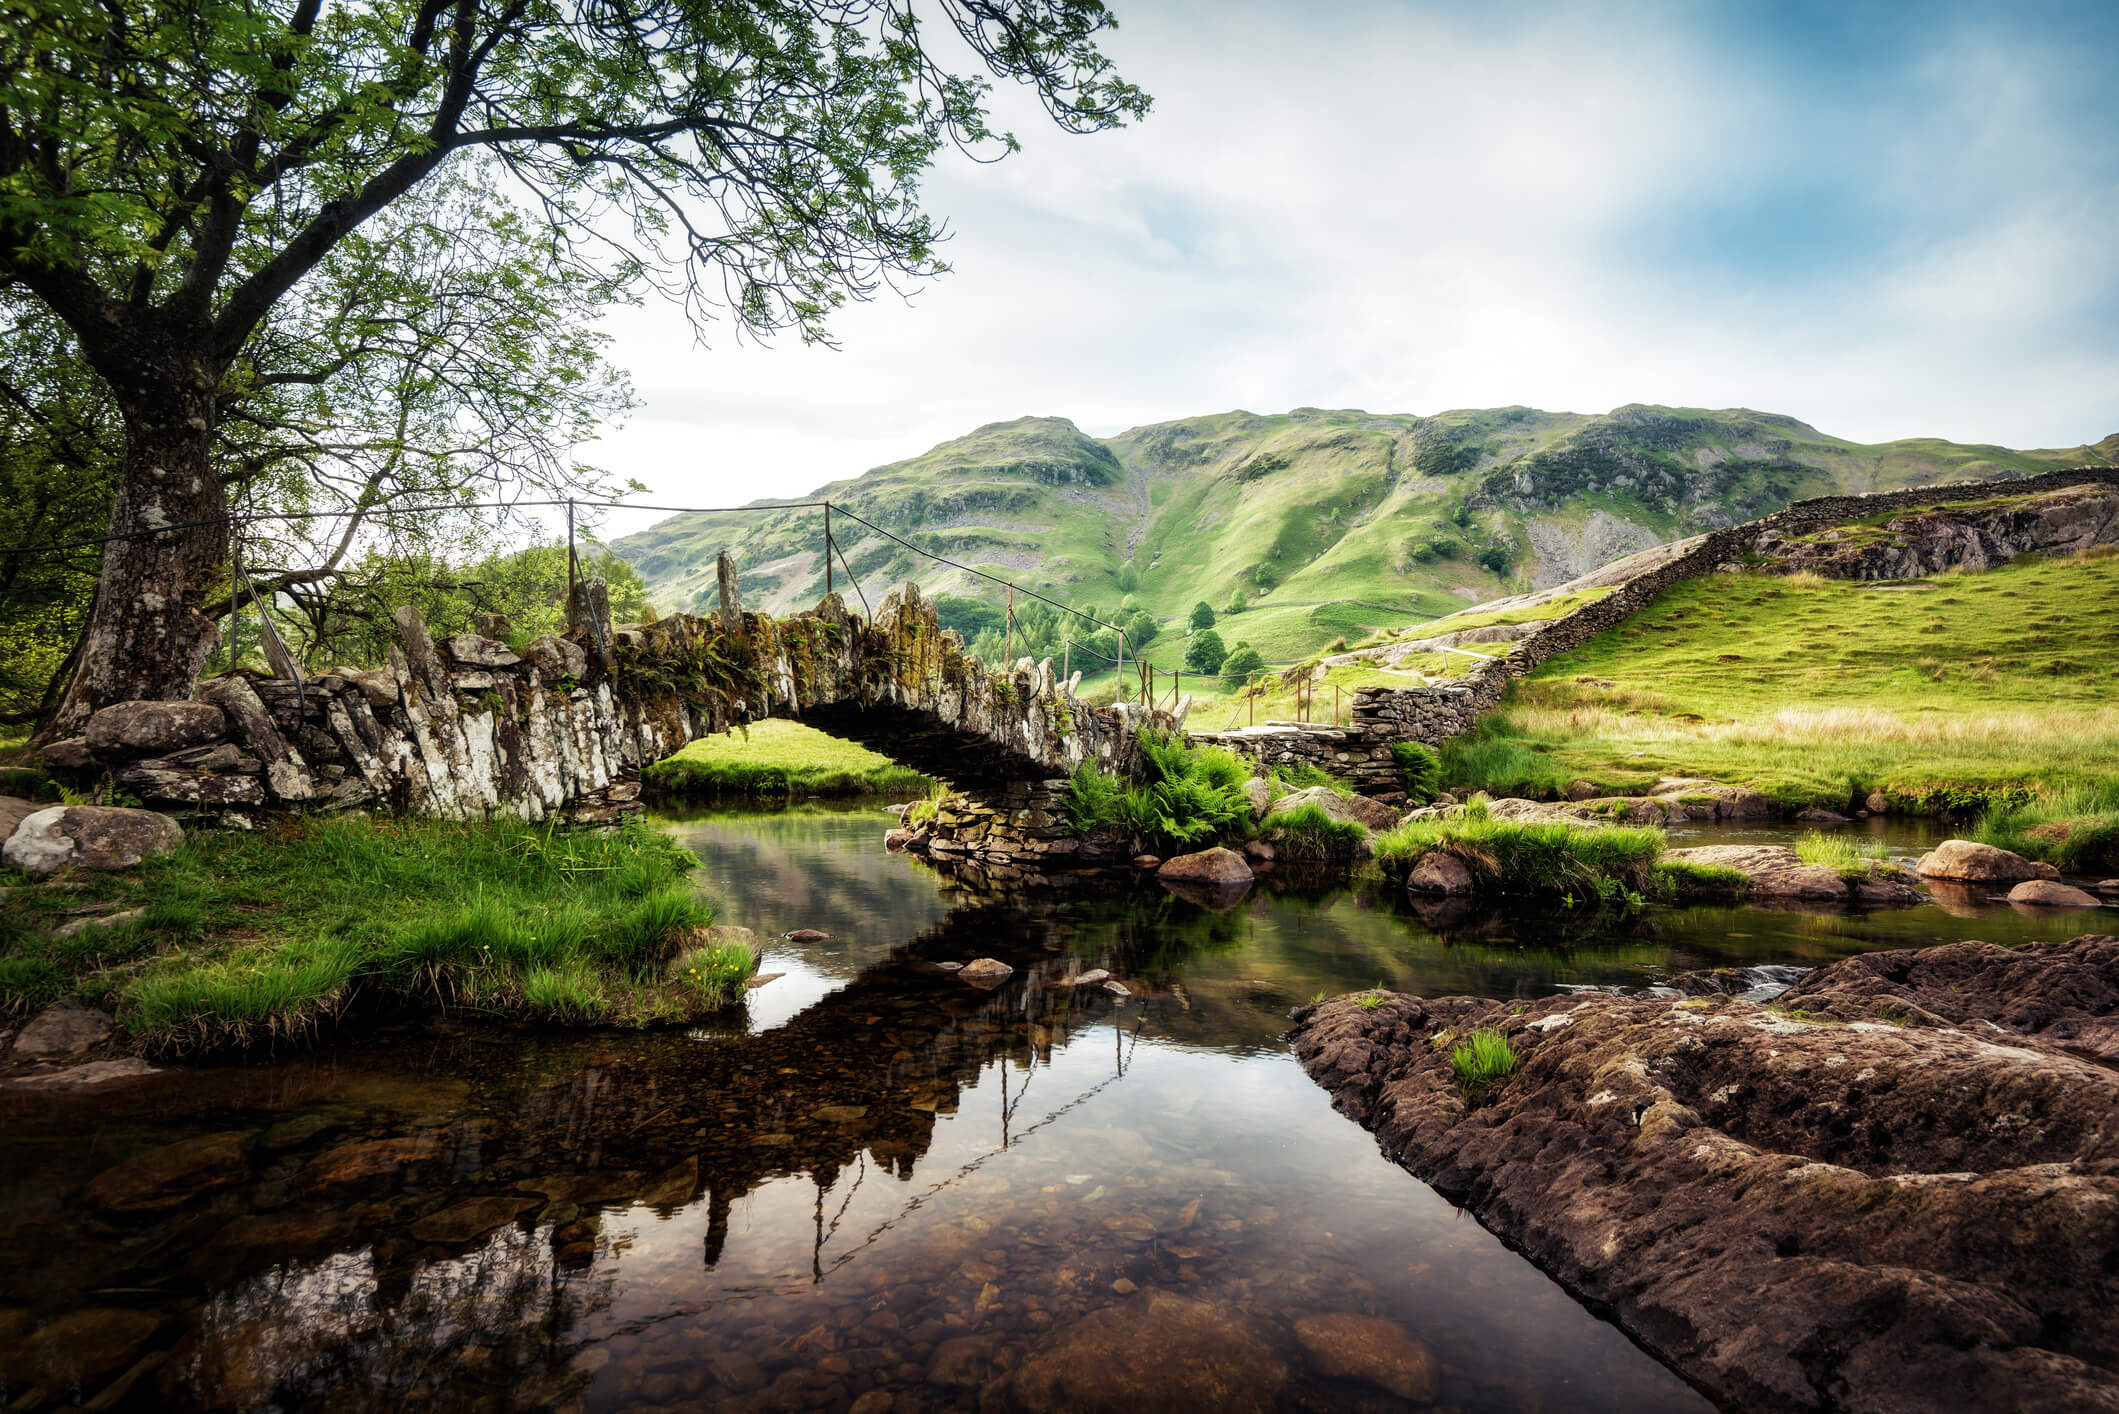 Slaters Bridge Lake District United Kingdom - traditional stone bridge over a river with green mountains in the background